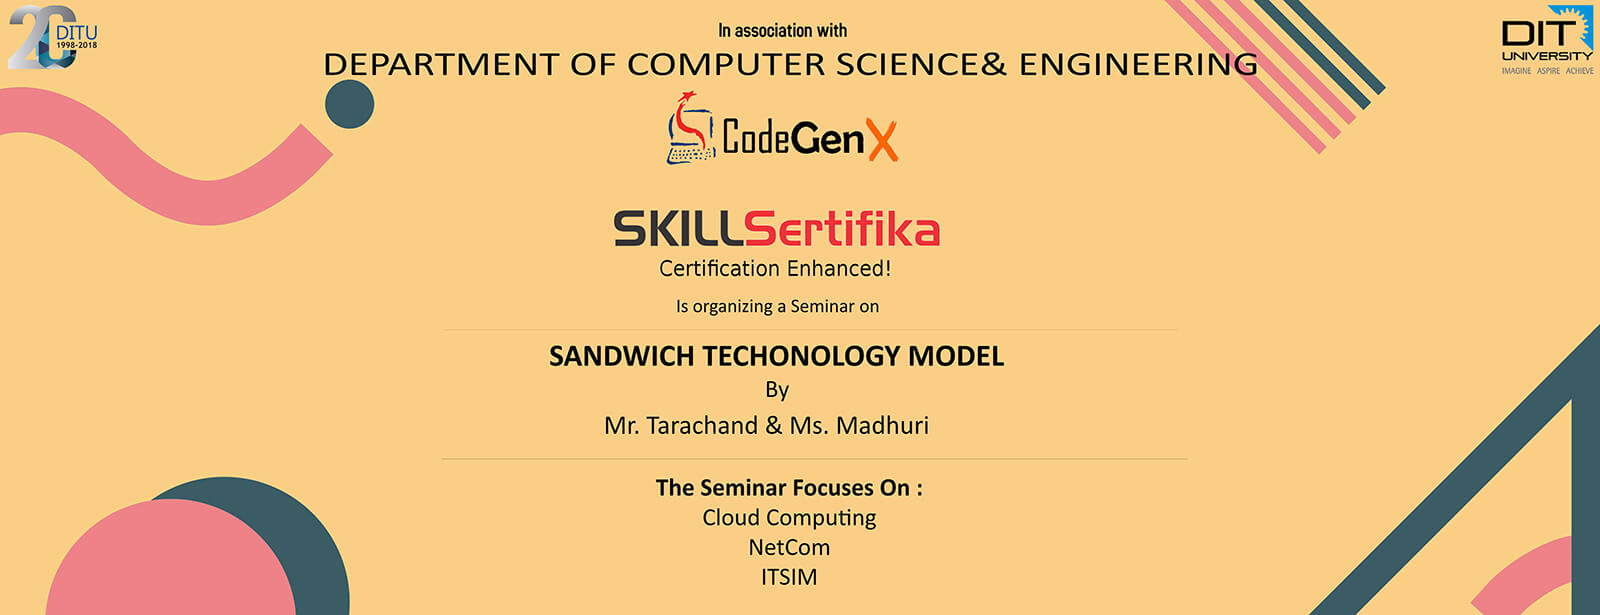 "Seminar on ""Sandwich Technology Model"" by SKILLSertfika"